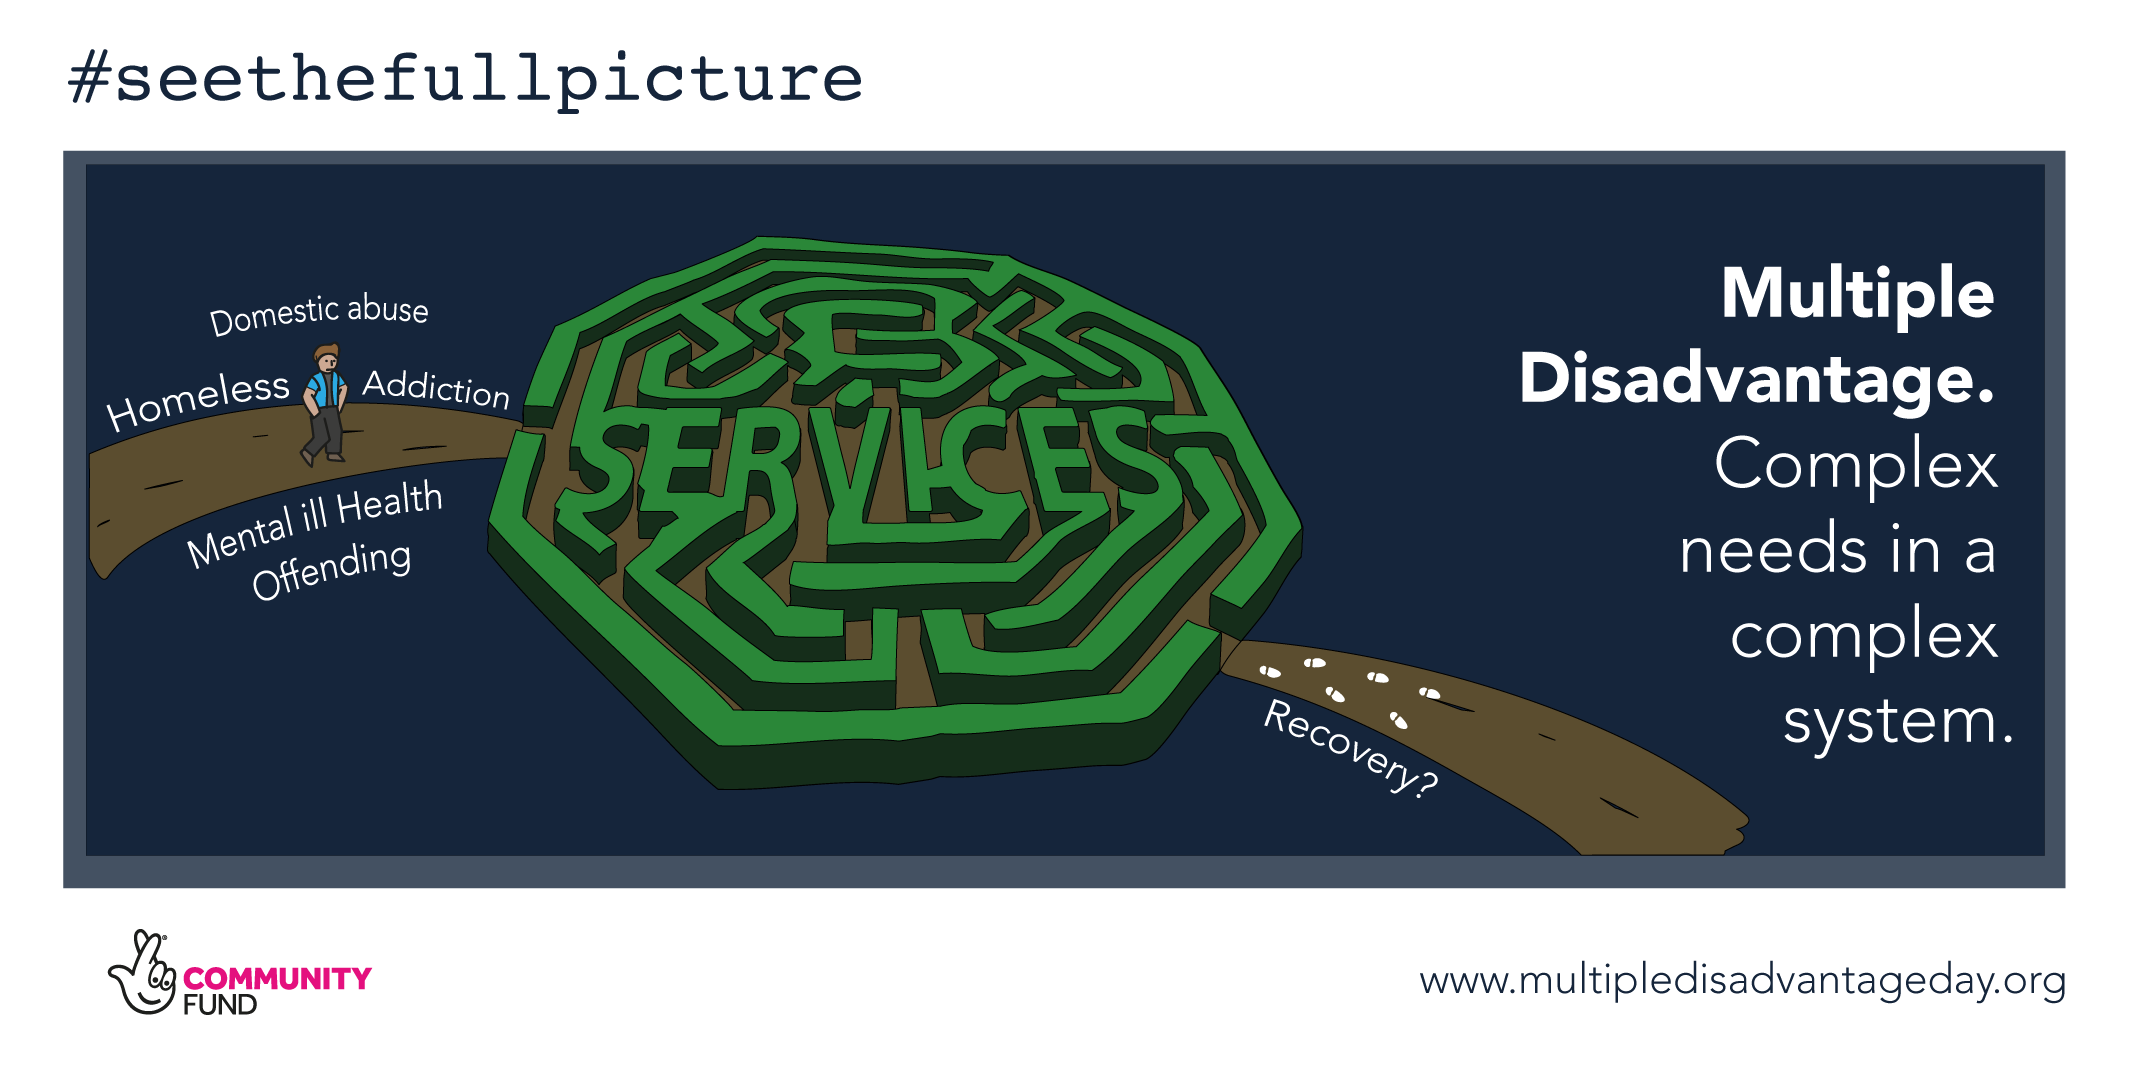 Multiple Disadvantage Day - #seethefullpicture - Campaign Graphics - complex needs in a complex system - Maze